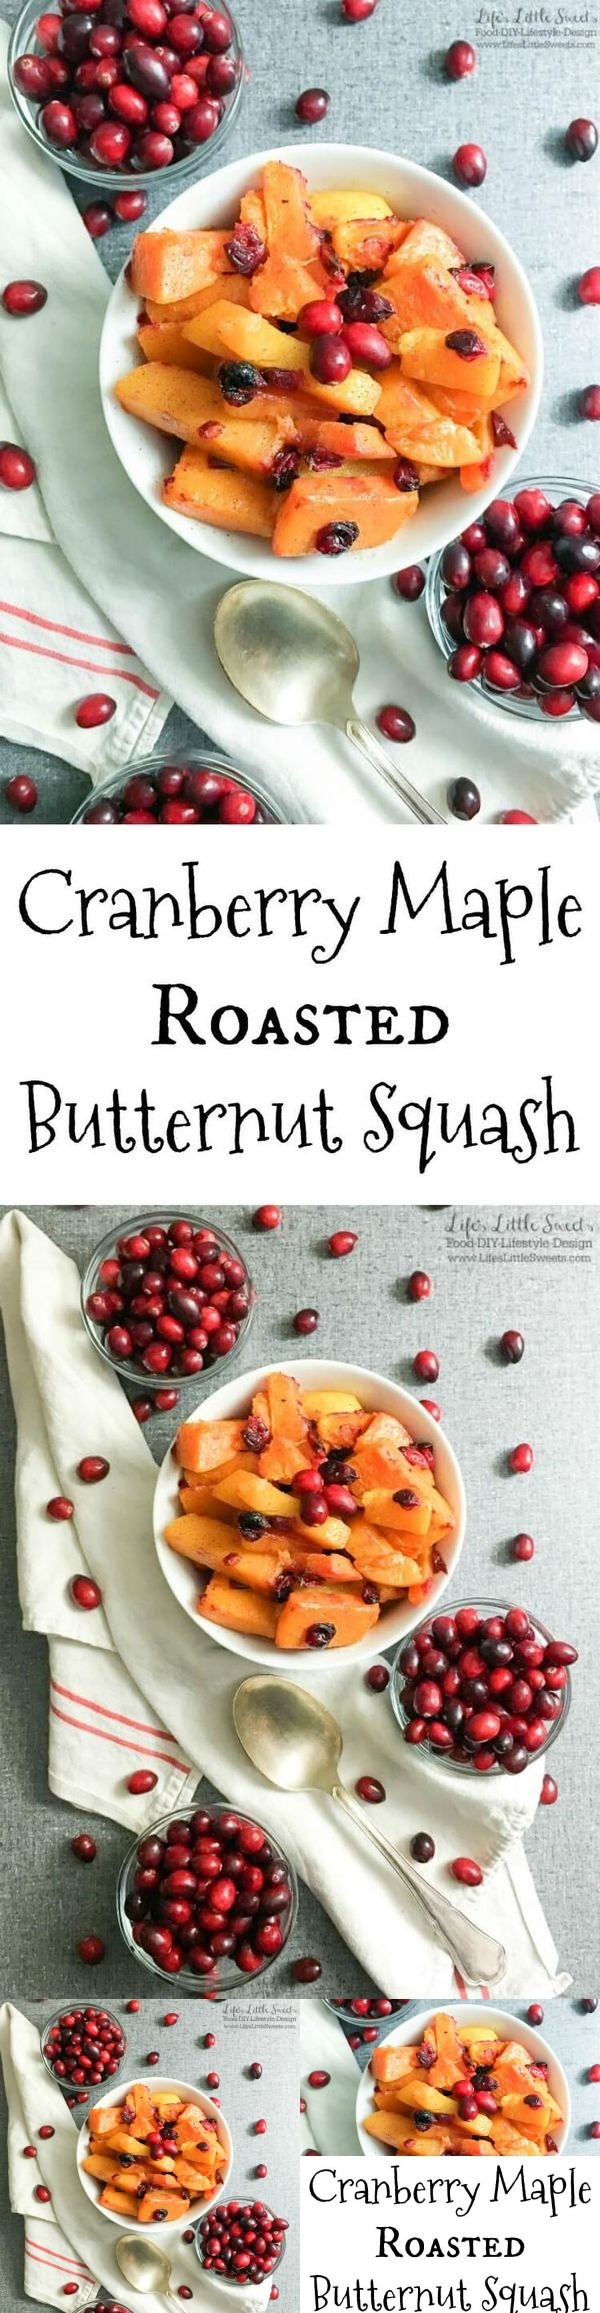 Cranberry Maple Roasted Butternut Squash